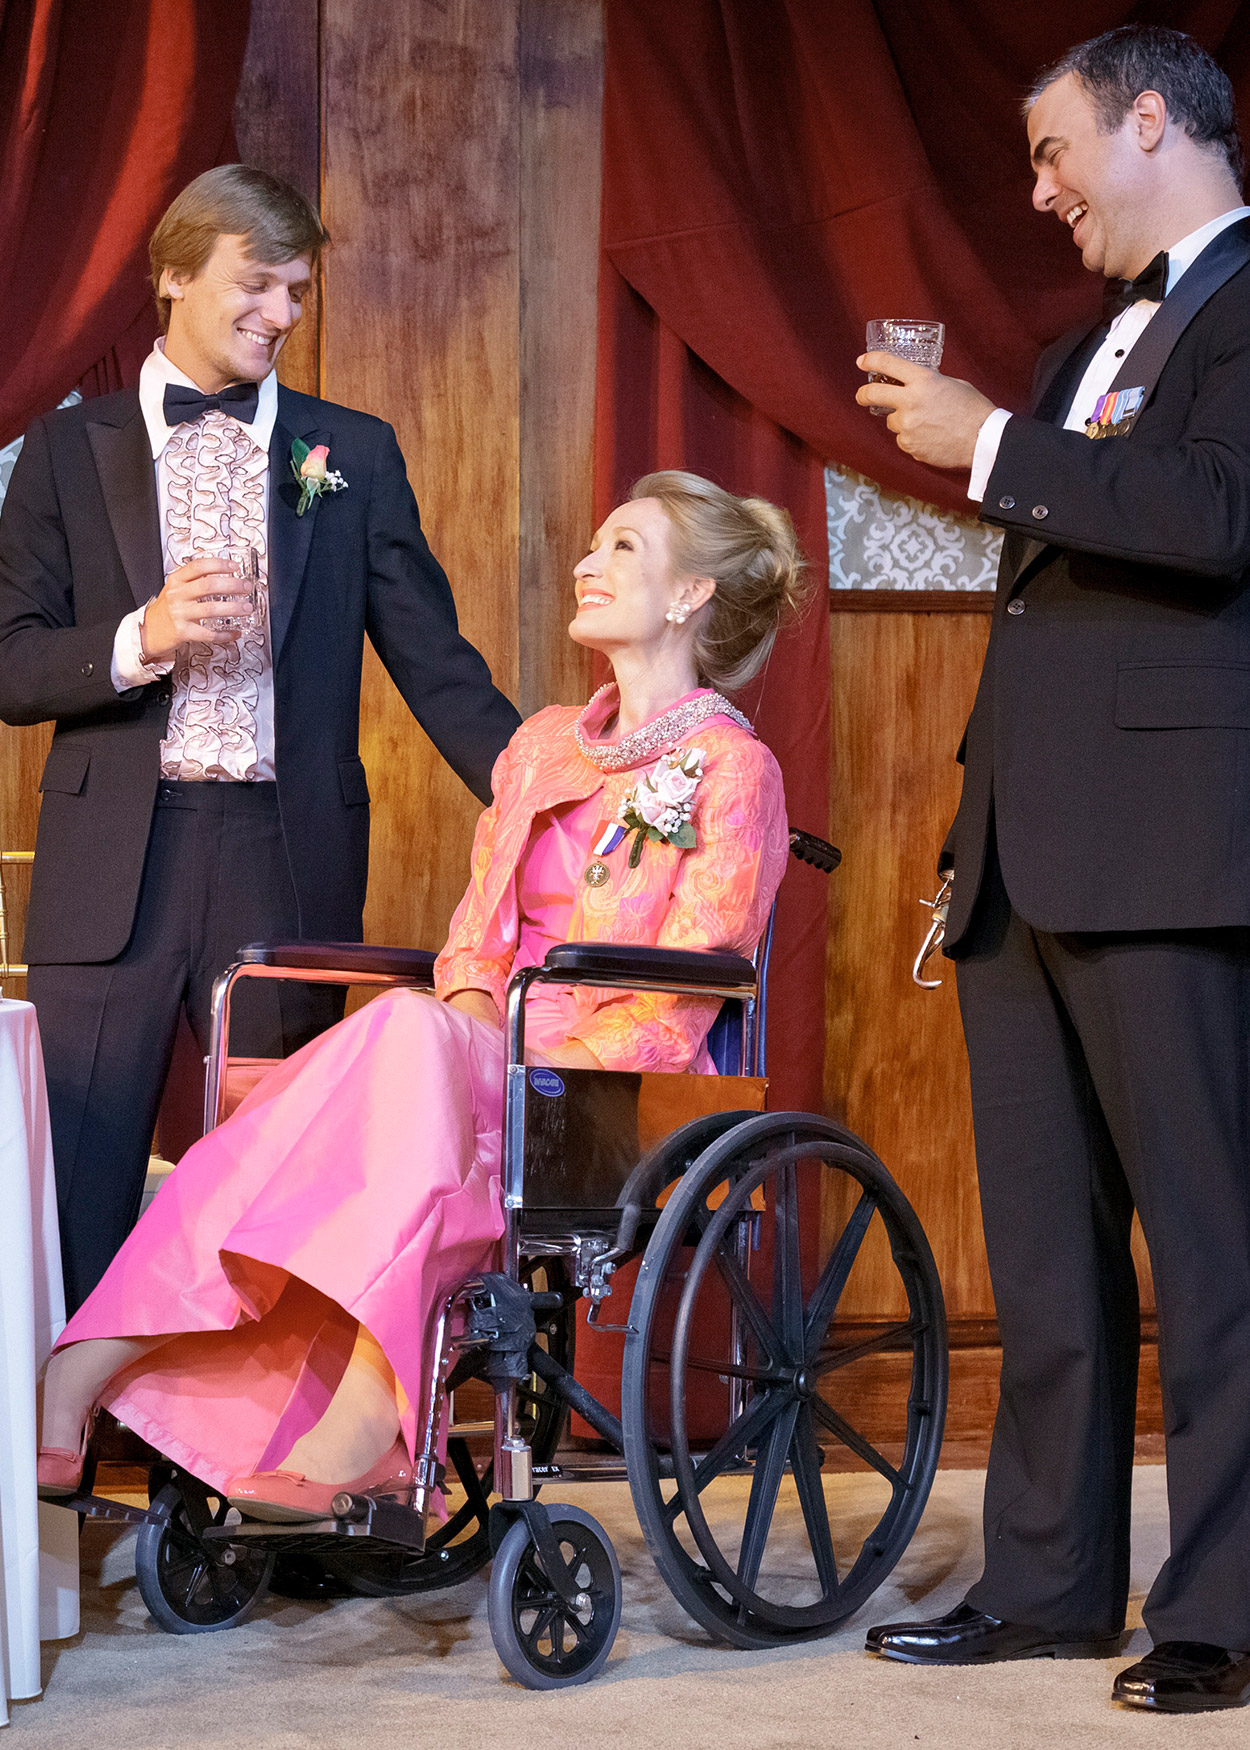 A woman in a pink dress sitting in a wheelchair between two standing men in tuxedos